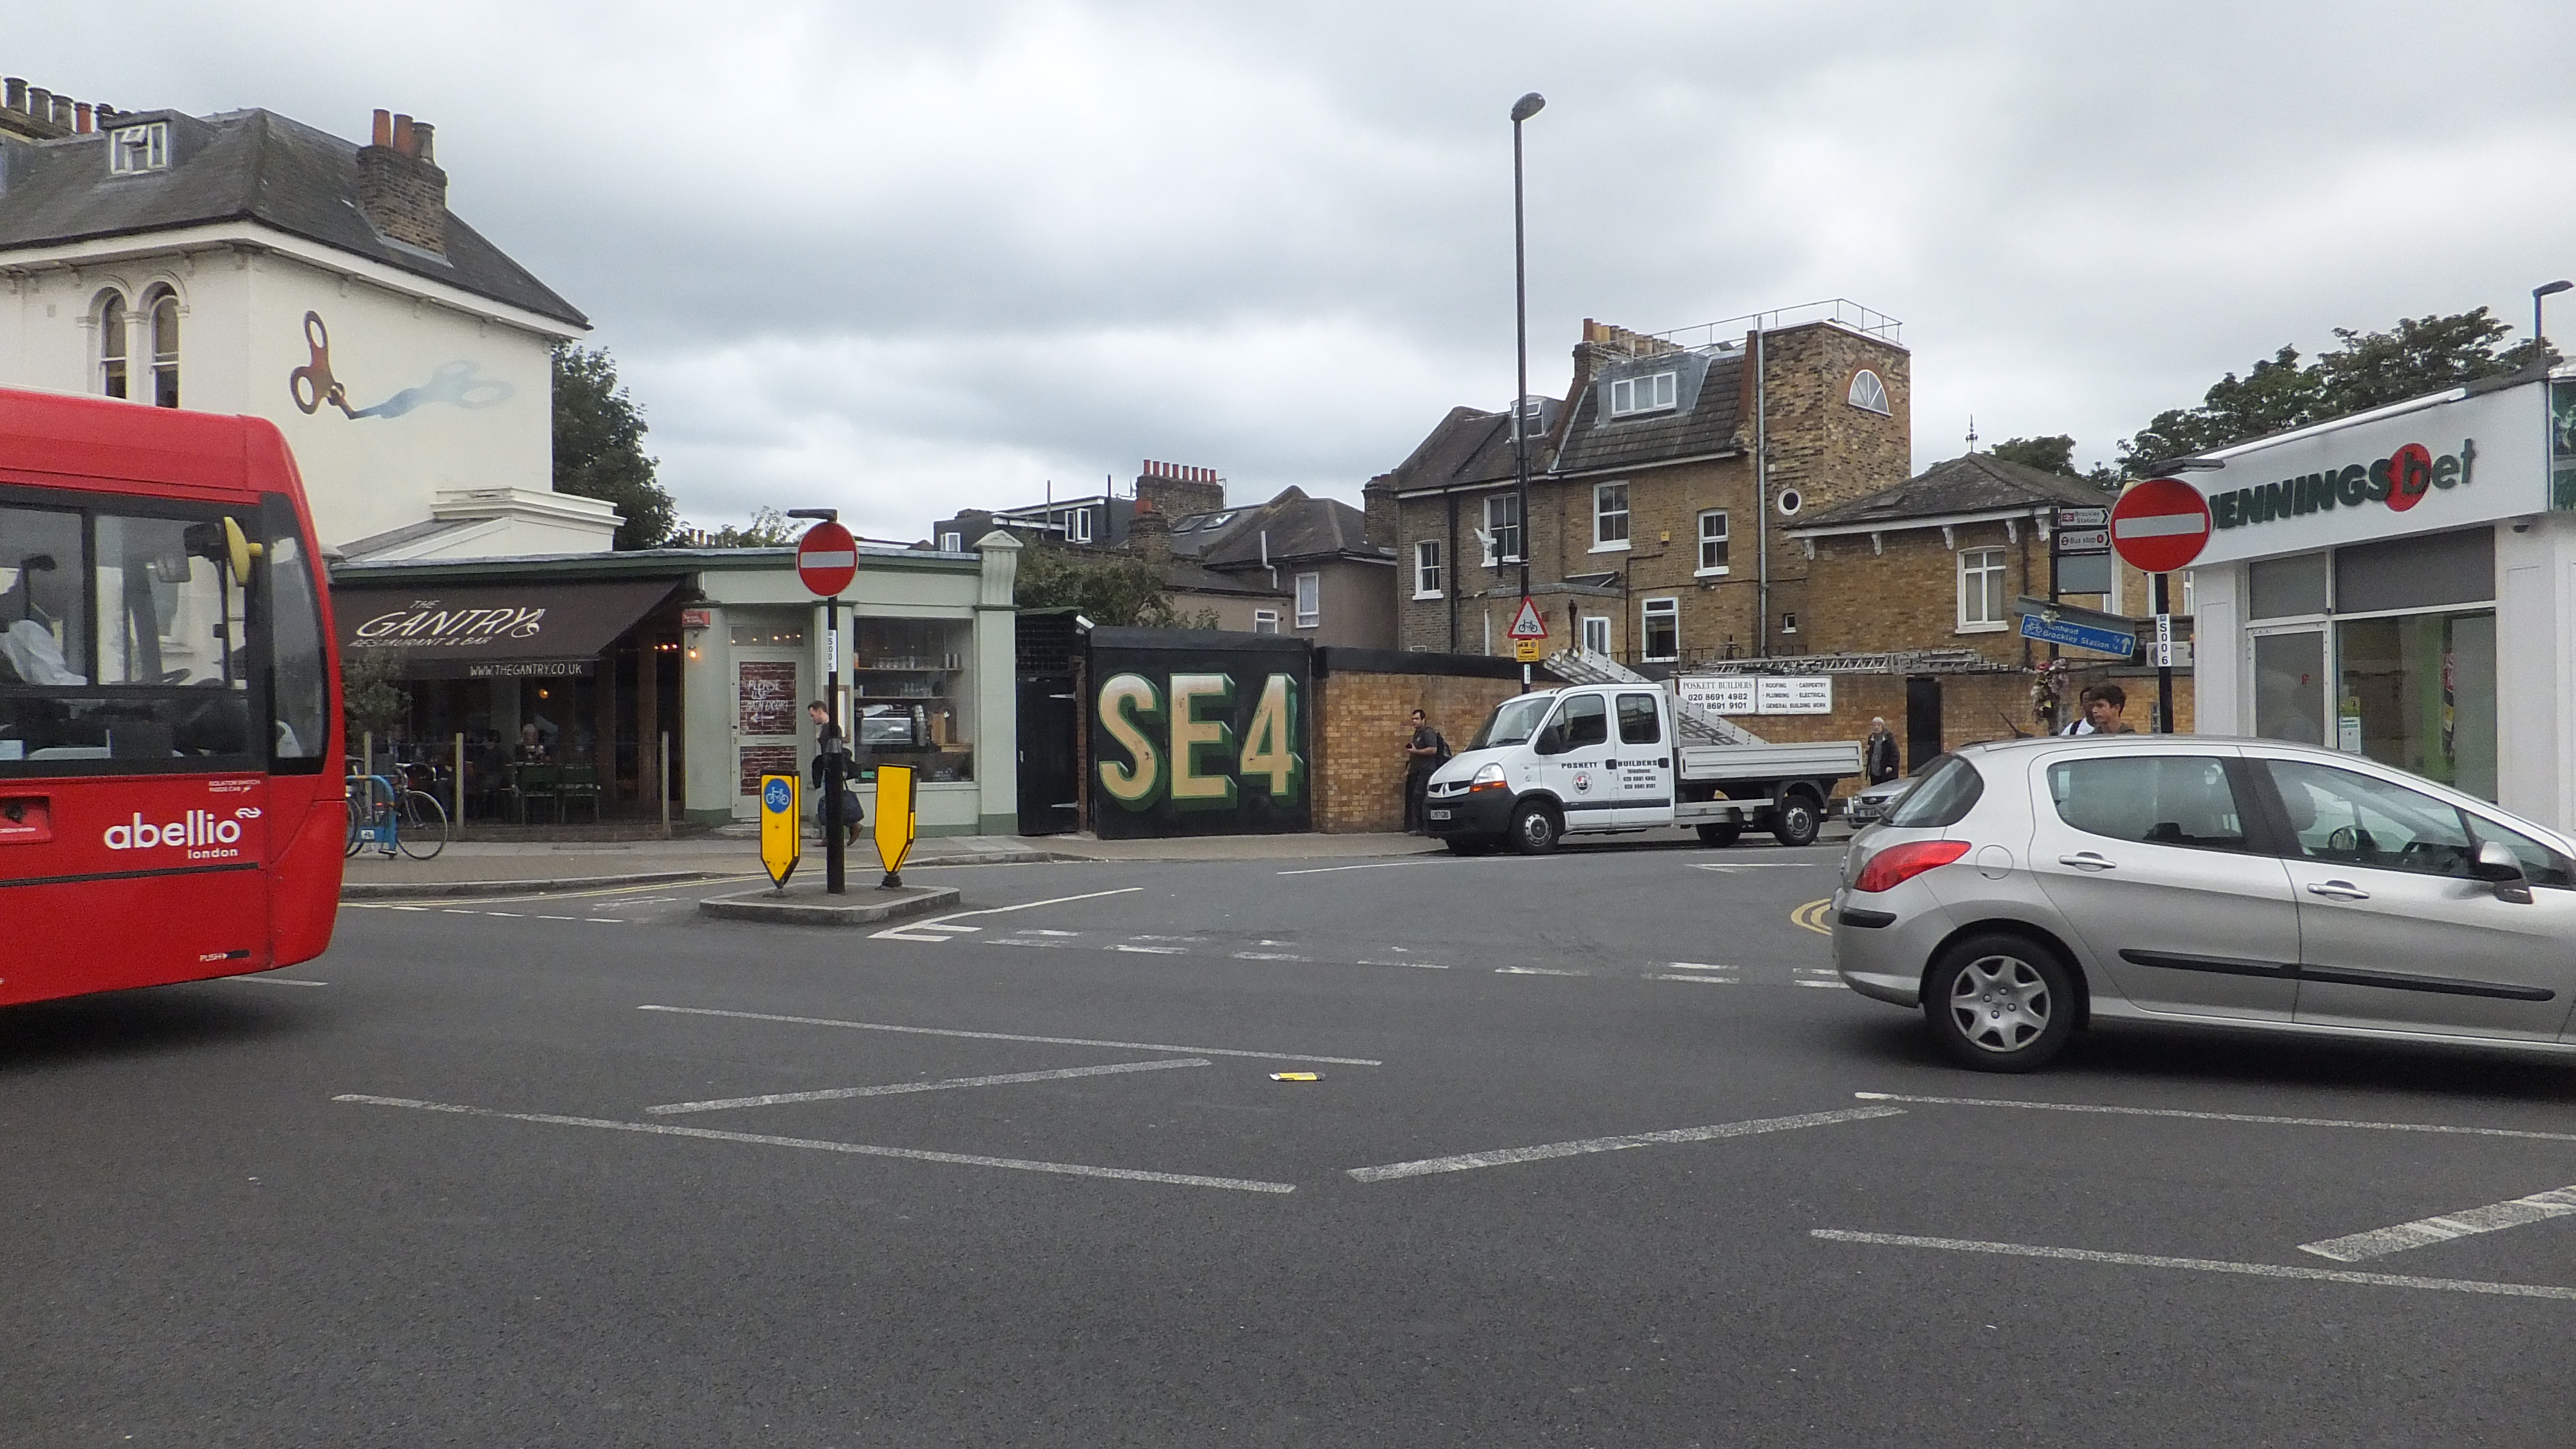 Pedestrian hit by car near Brockley station